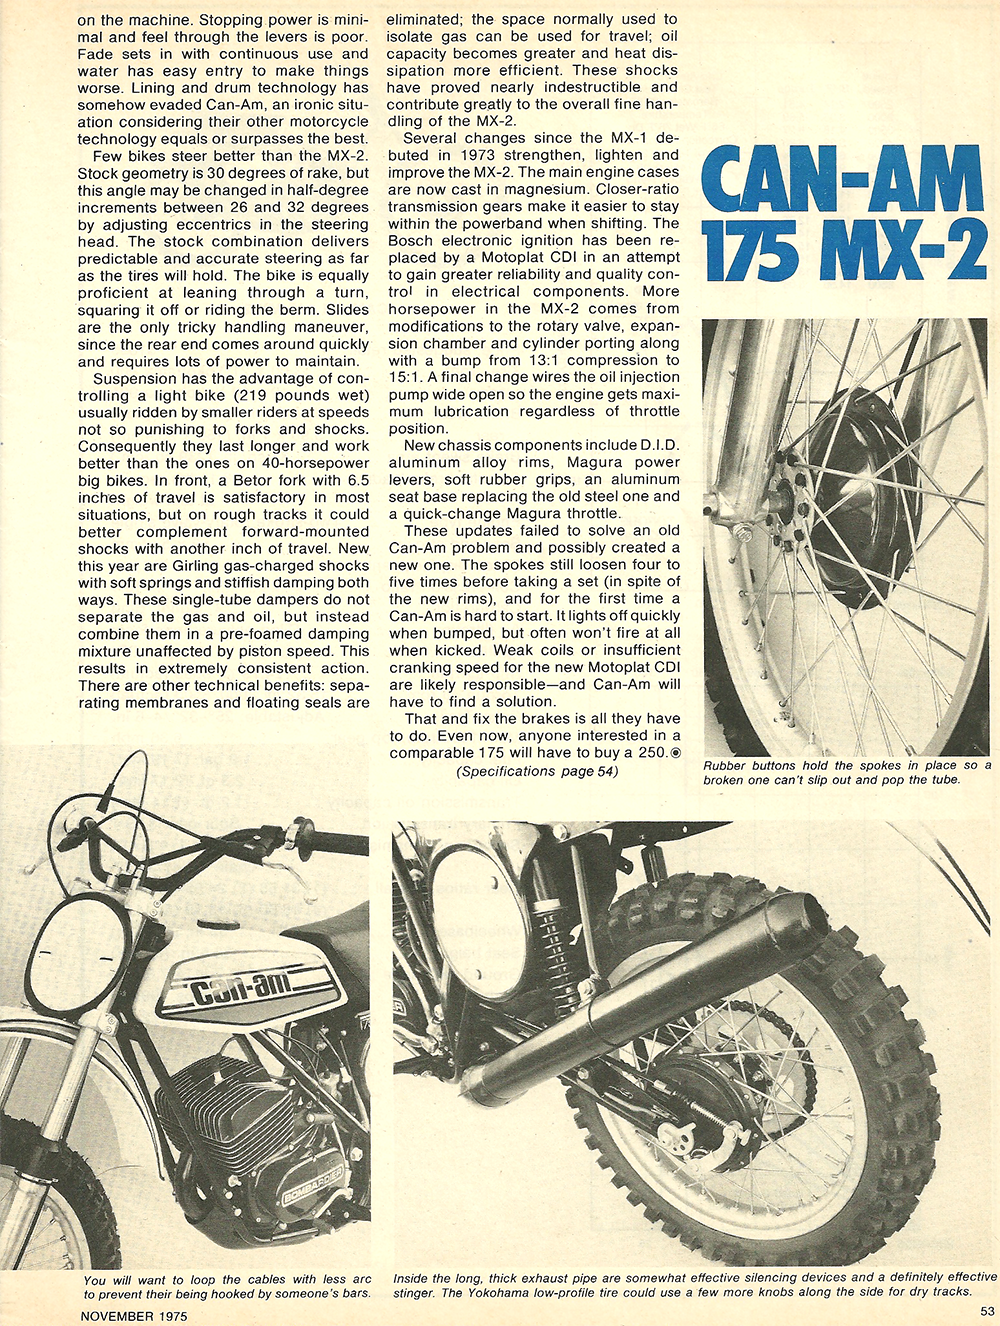 1975 Can Am 175 MX2 road test 4.png